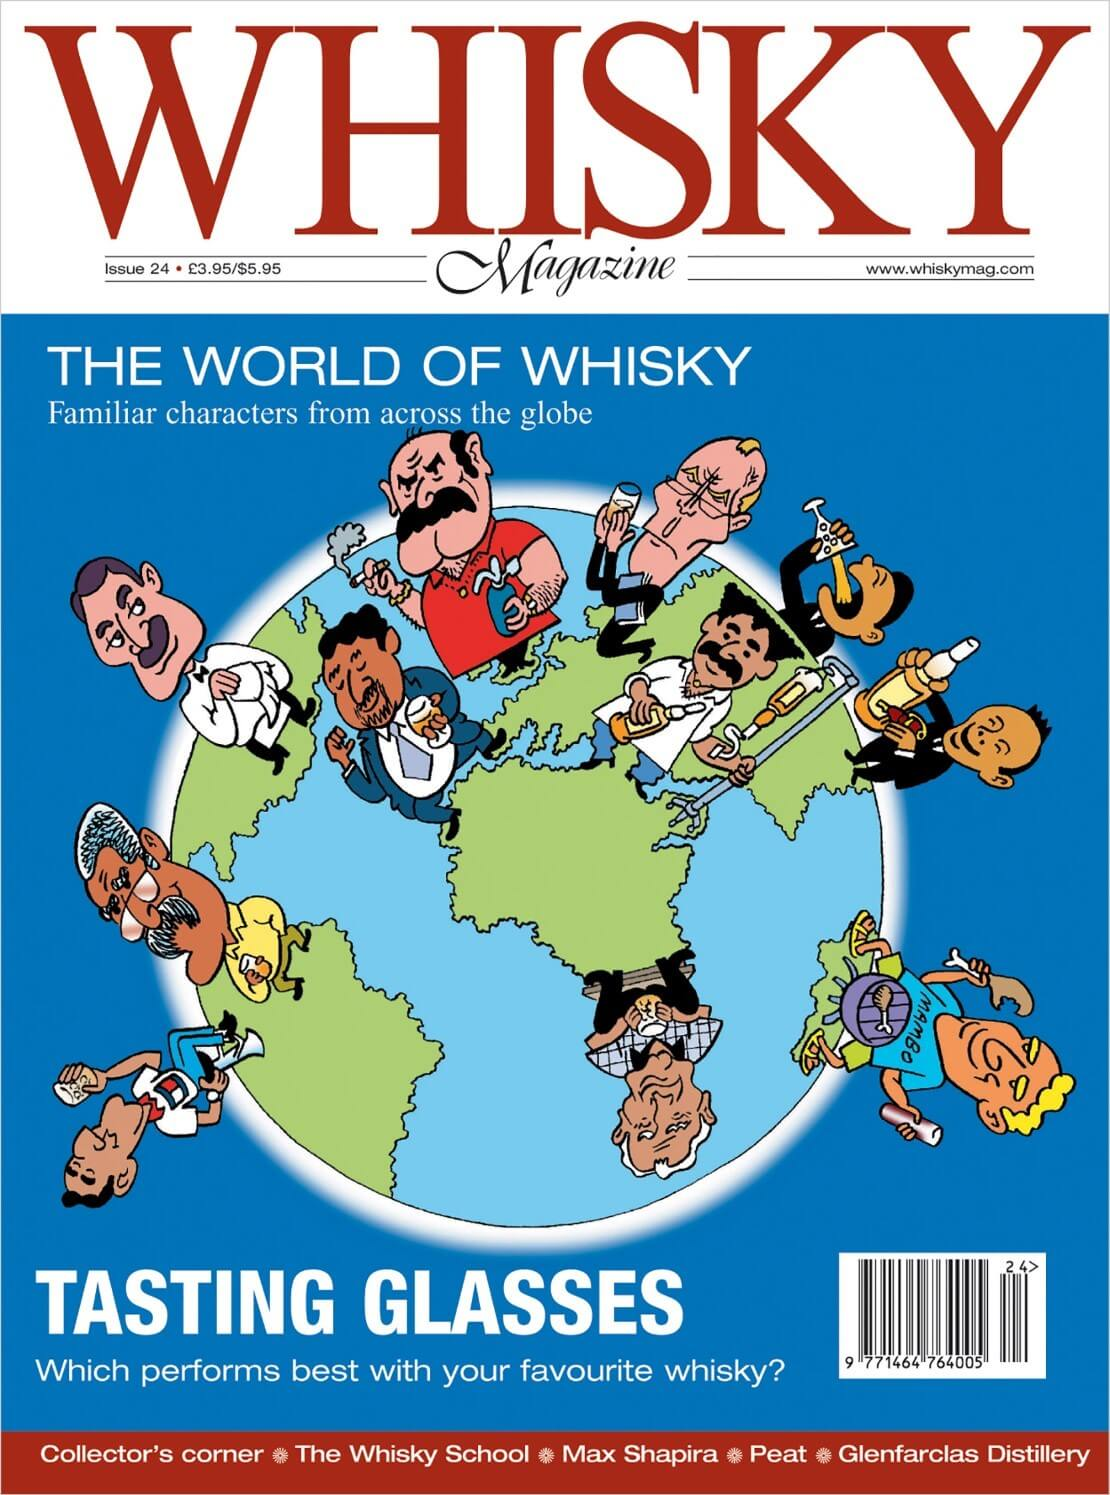 The world of whisky Max Shapira Glenfarclas New world whisky tasting